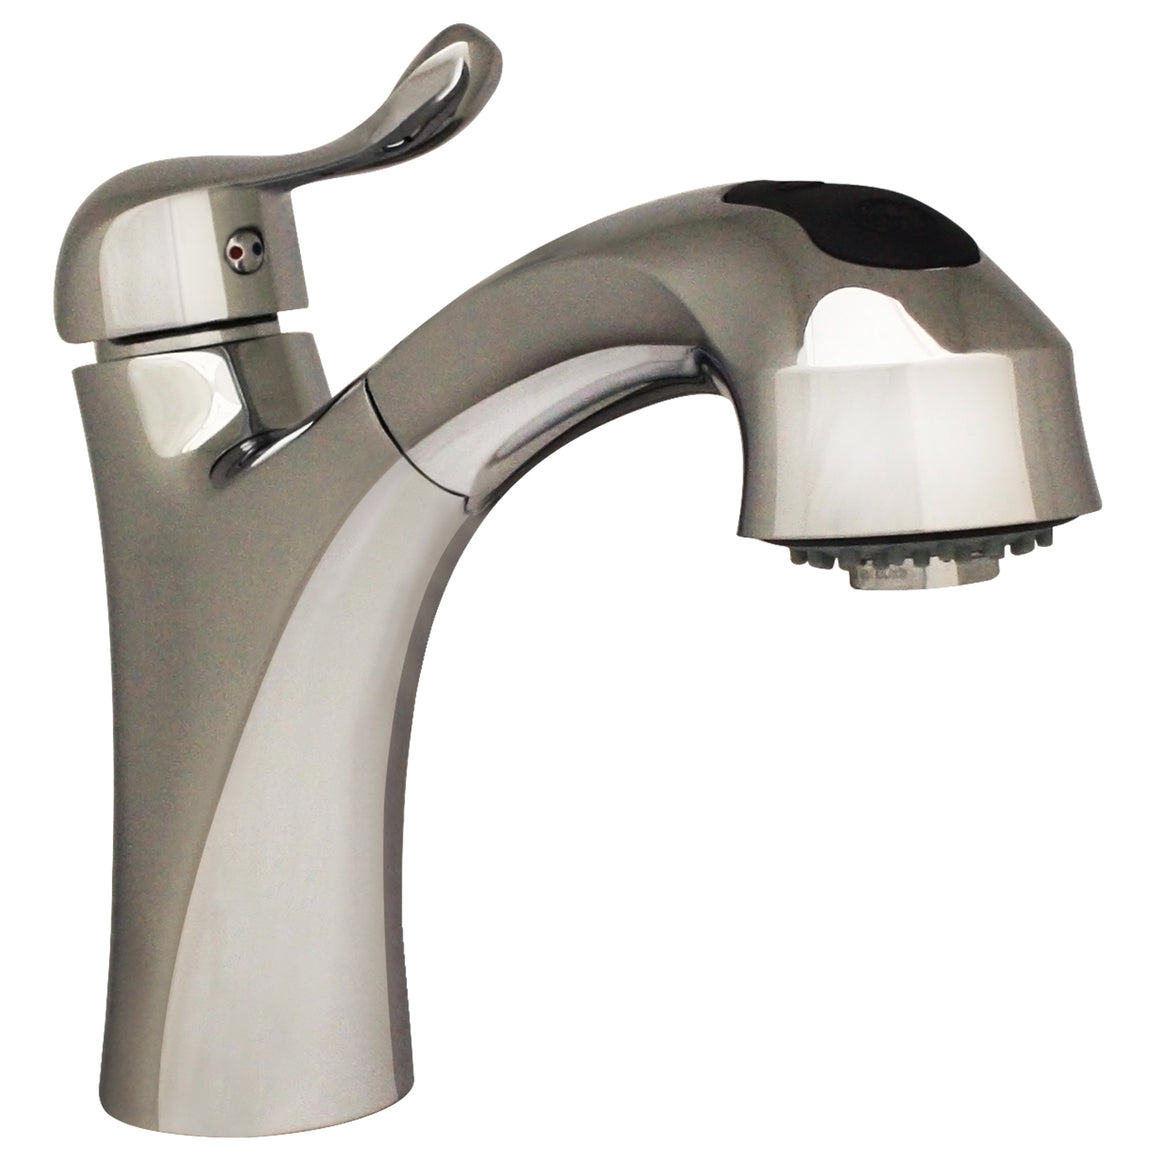 Jem Collection single hole/single lever handle faucet with a pull out spray head